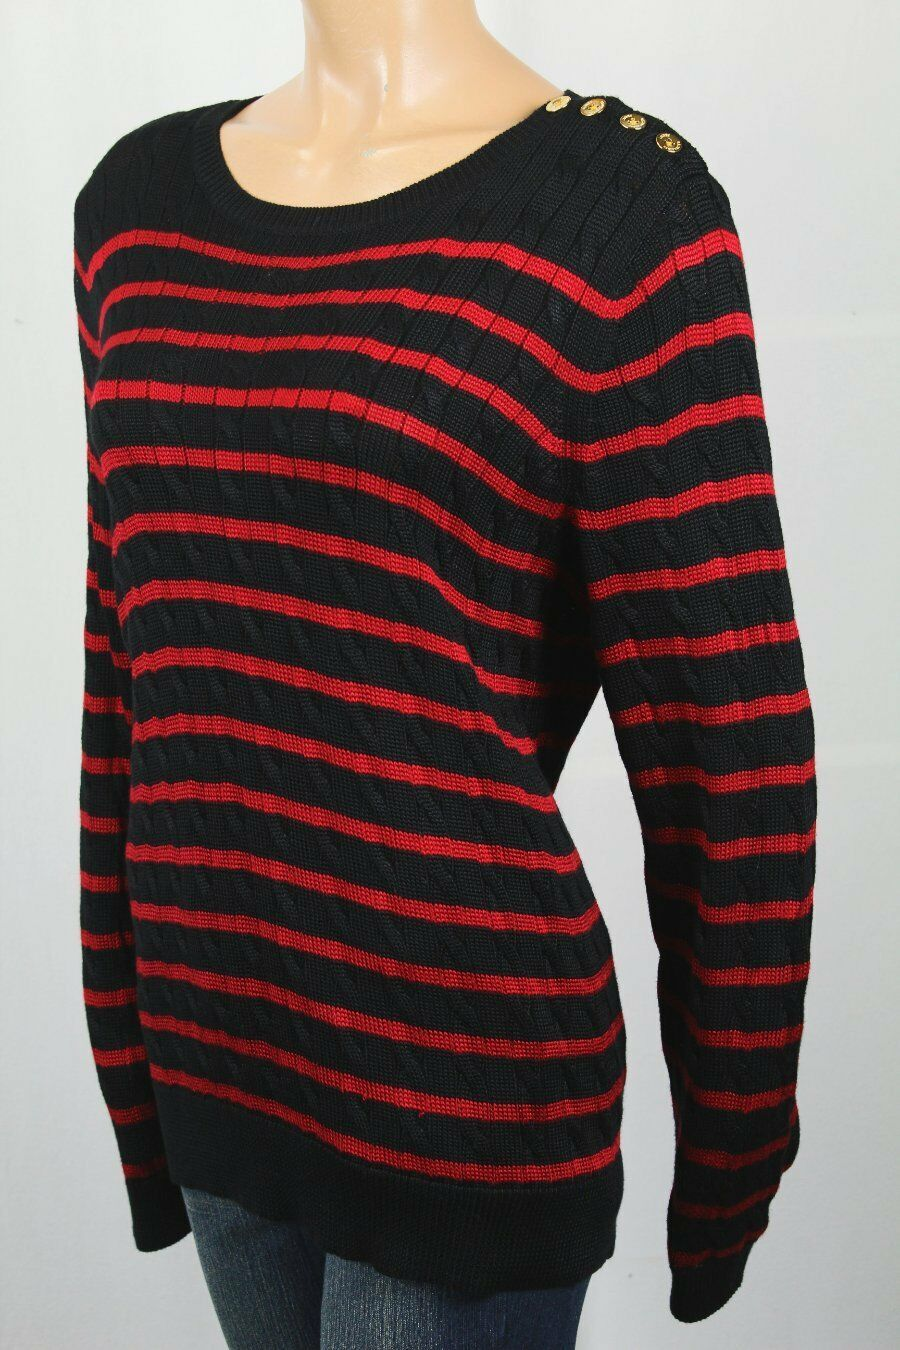 Ralph Lauren Womens Black Red Cable Stripe Sweater 1x Plus | eBay